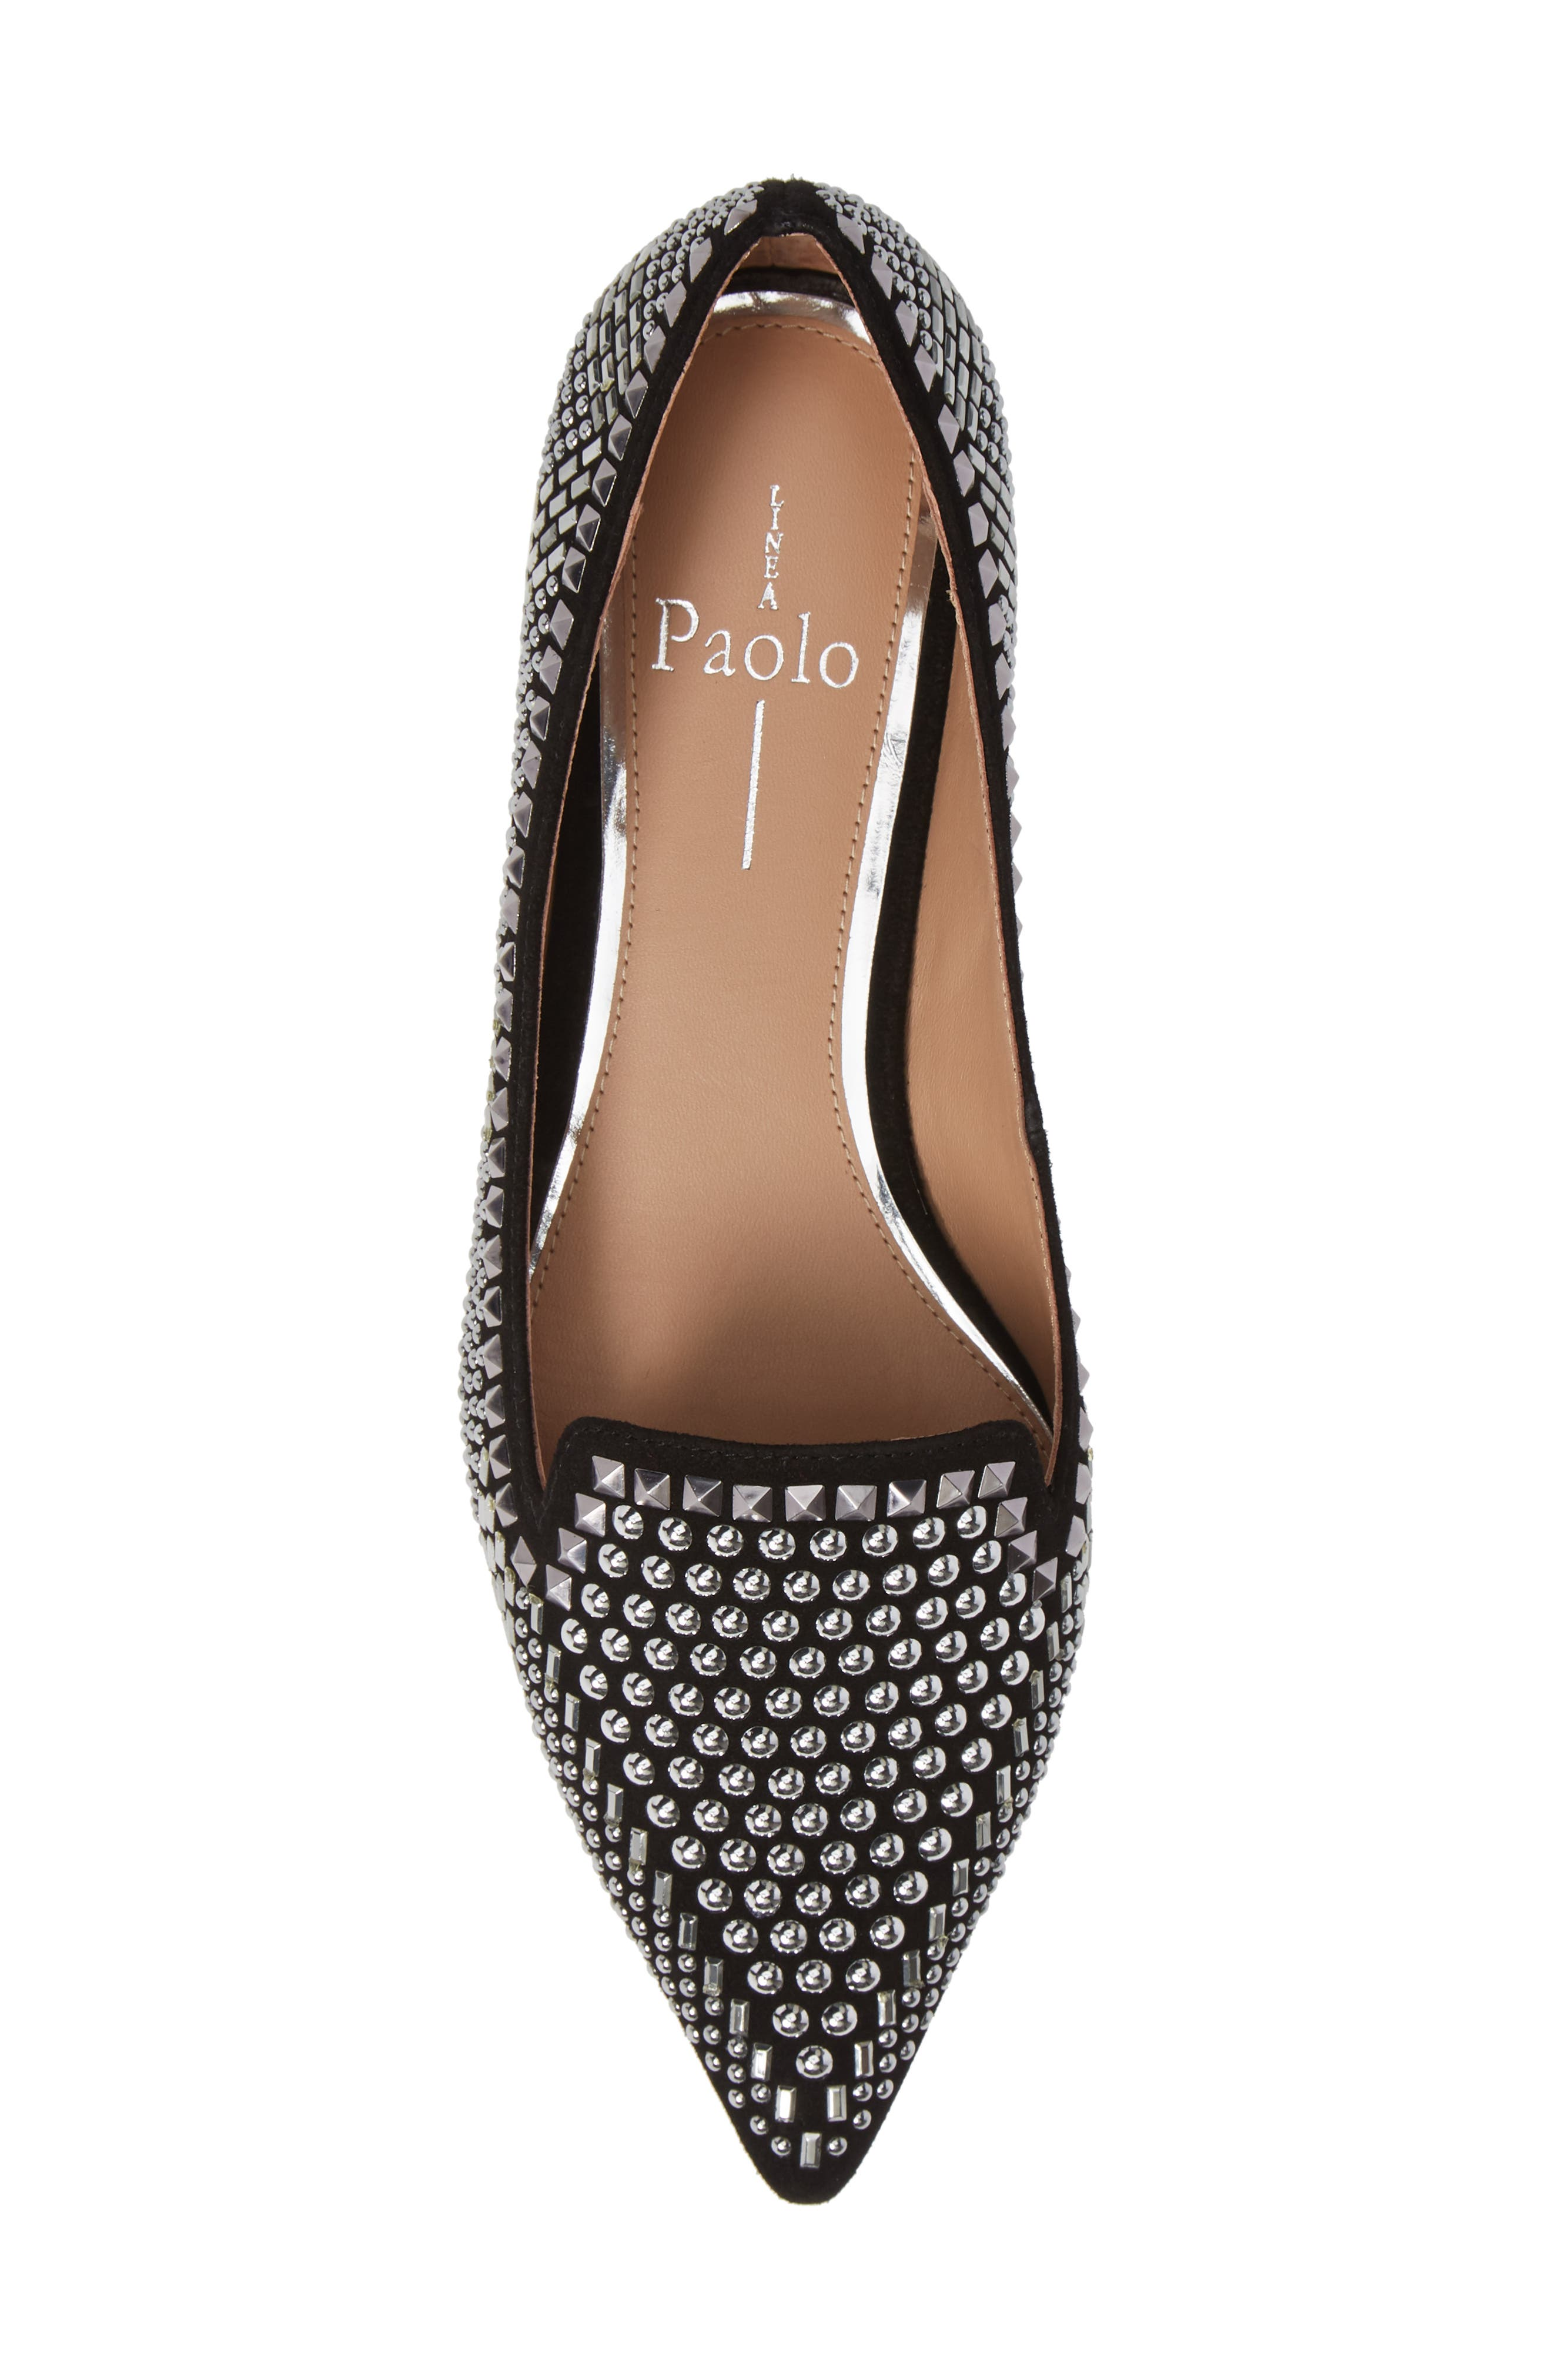 LINEA PAOLO, Portia Studded Loafer, Alternate thumbnail 5, color, BLACK SUEDE